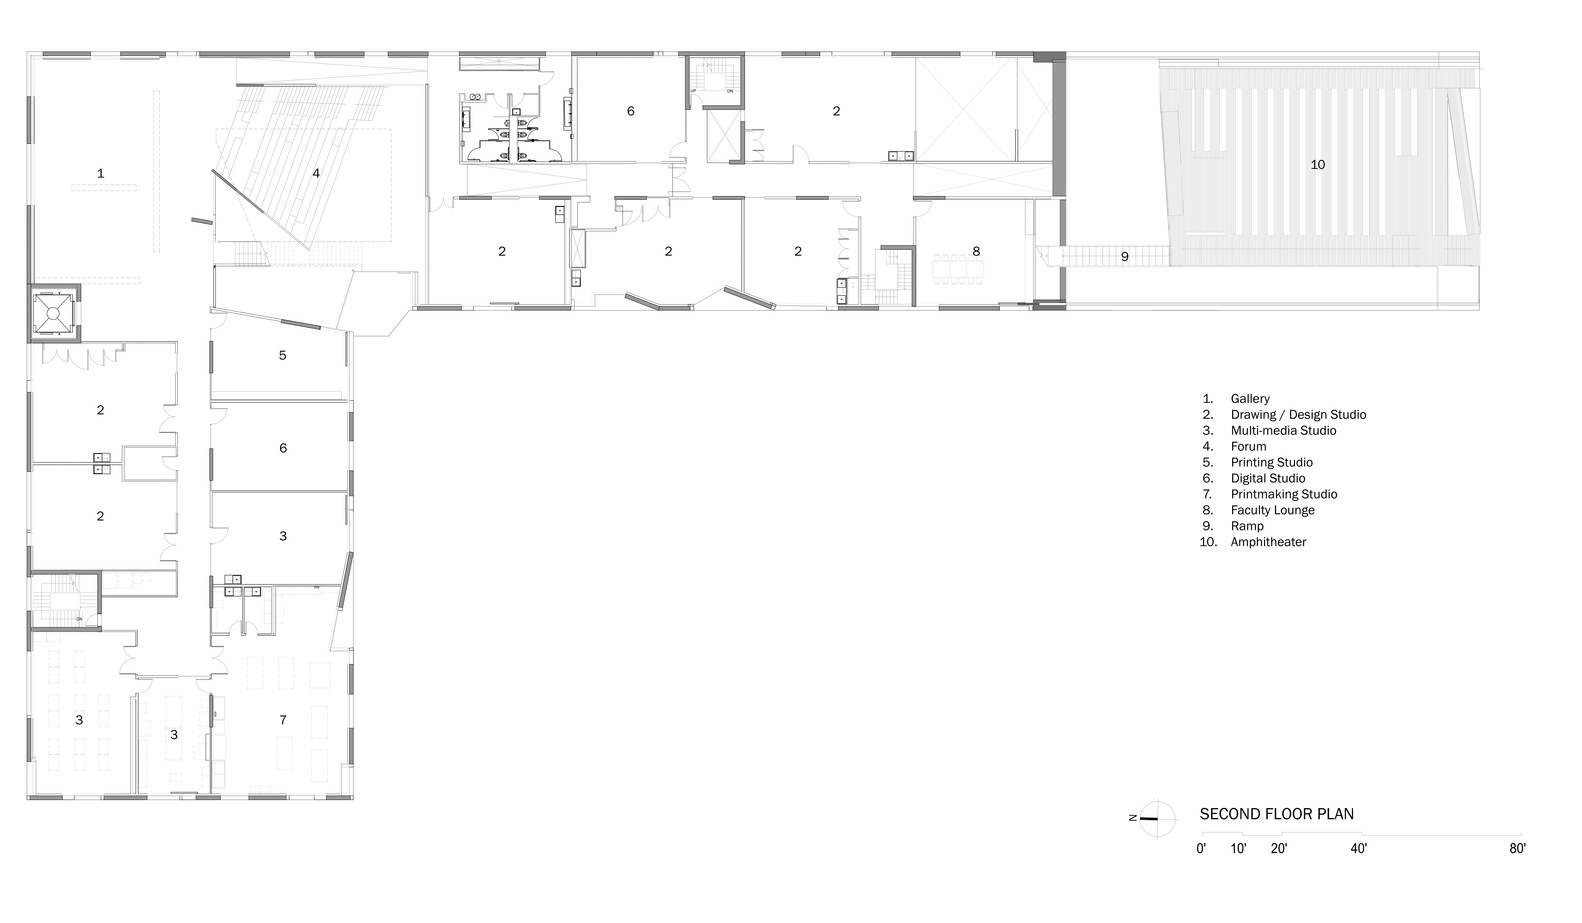 Gallery Of Glassell School Of Art Steven Holl Architects 13